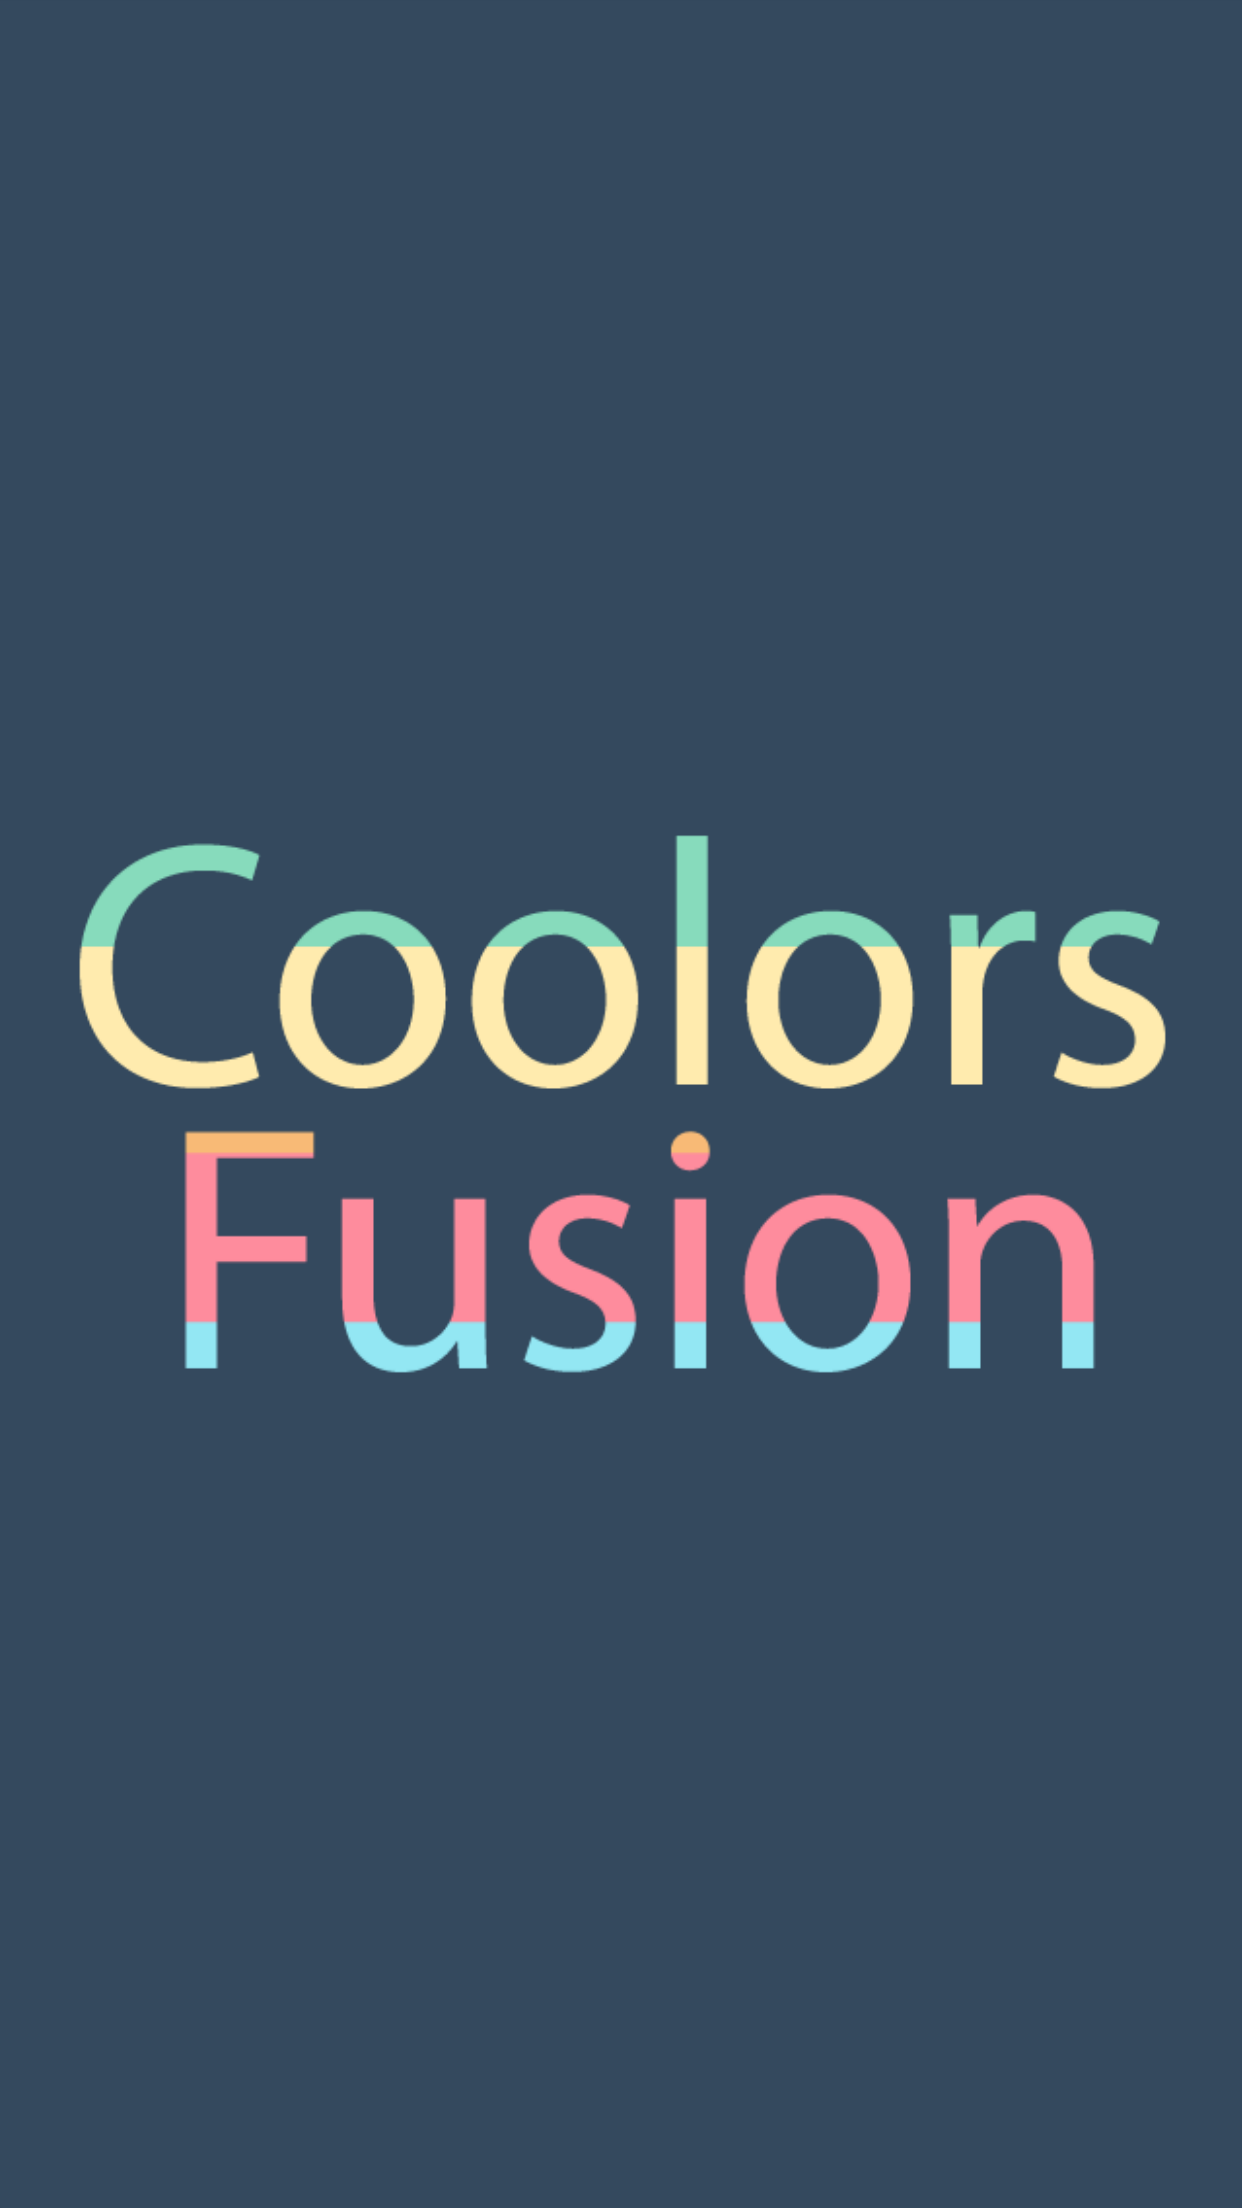 CoolorsFusion